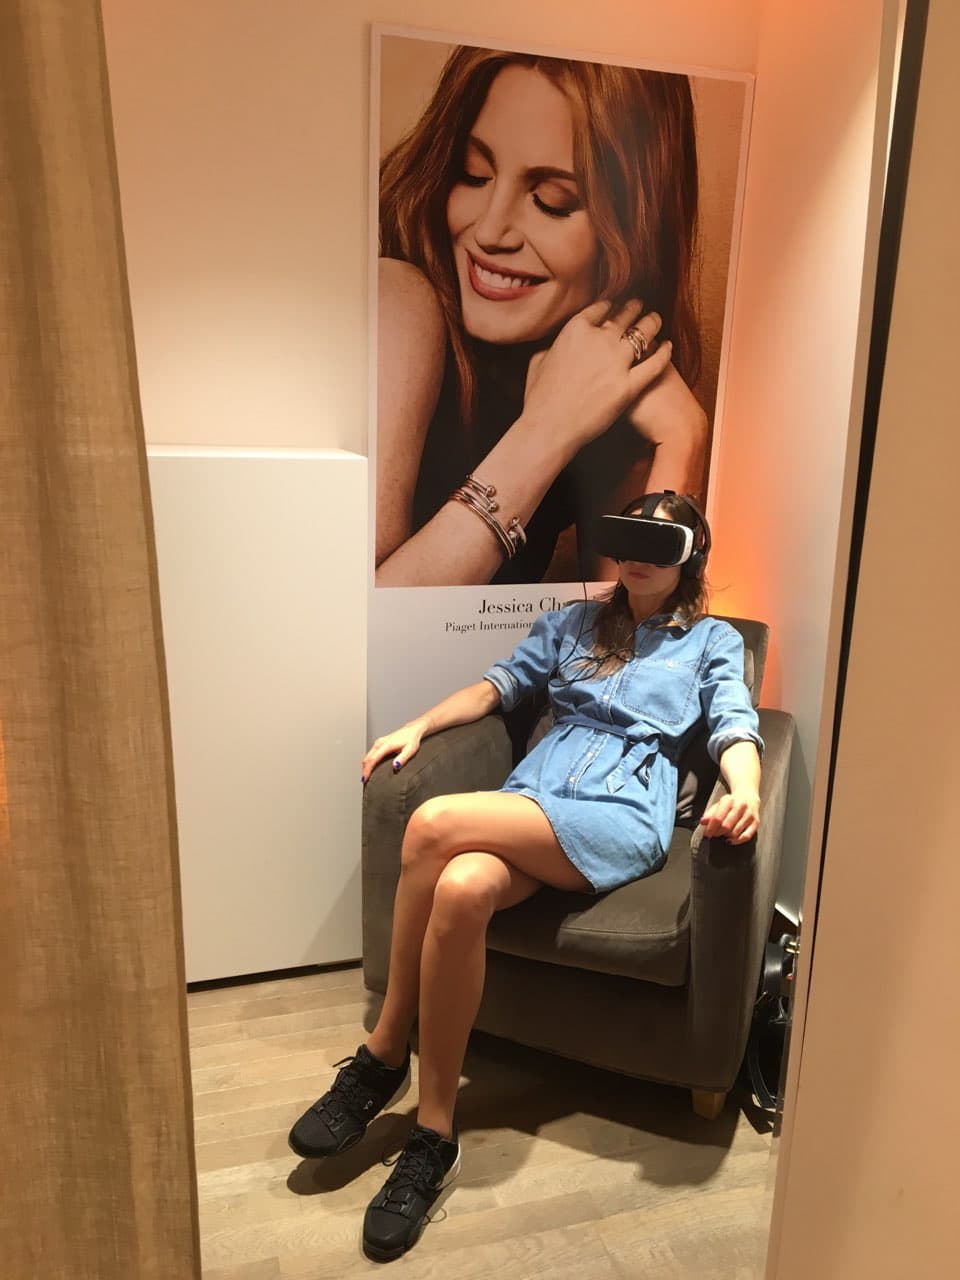 Virtual Reality | Lougne privé Radiance Possession - Piaget - Event by Arlinkz